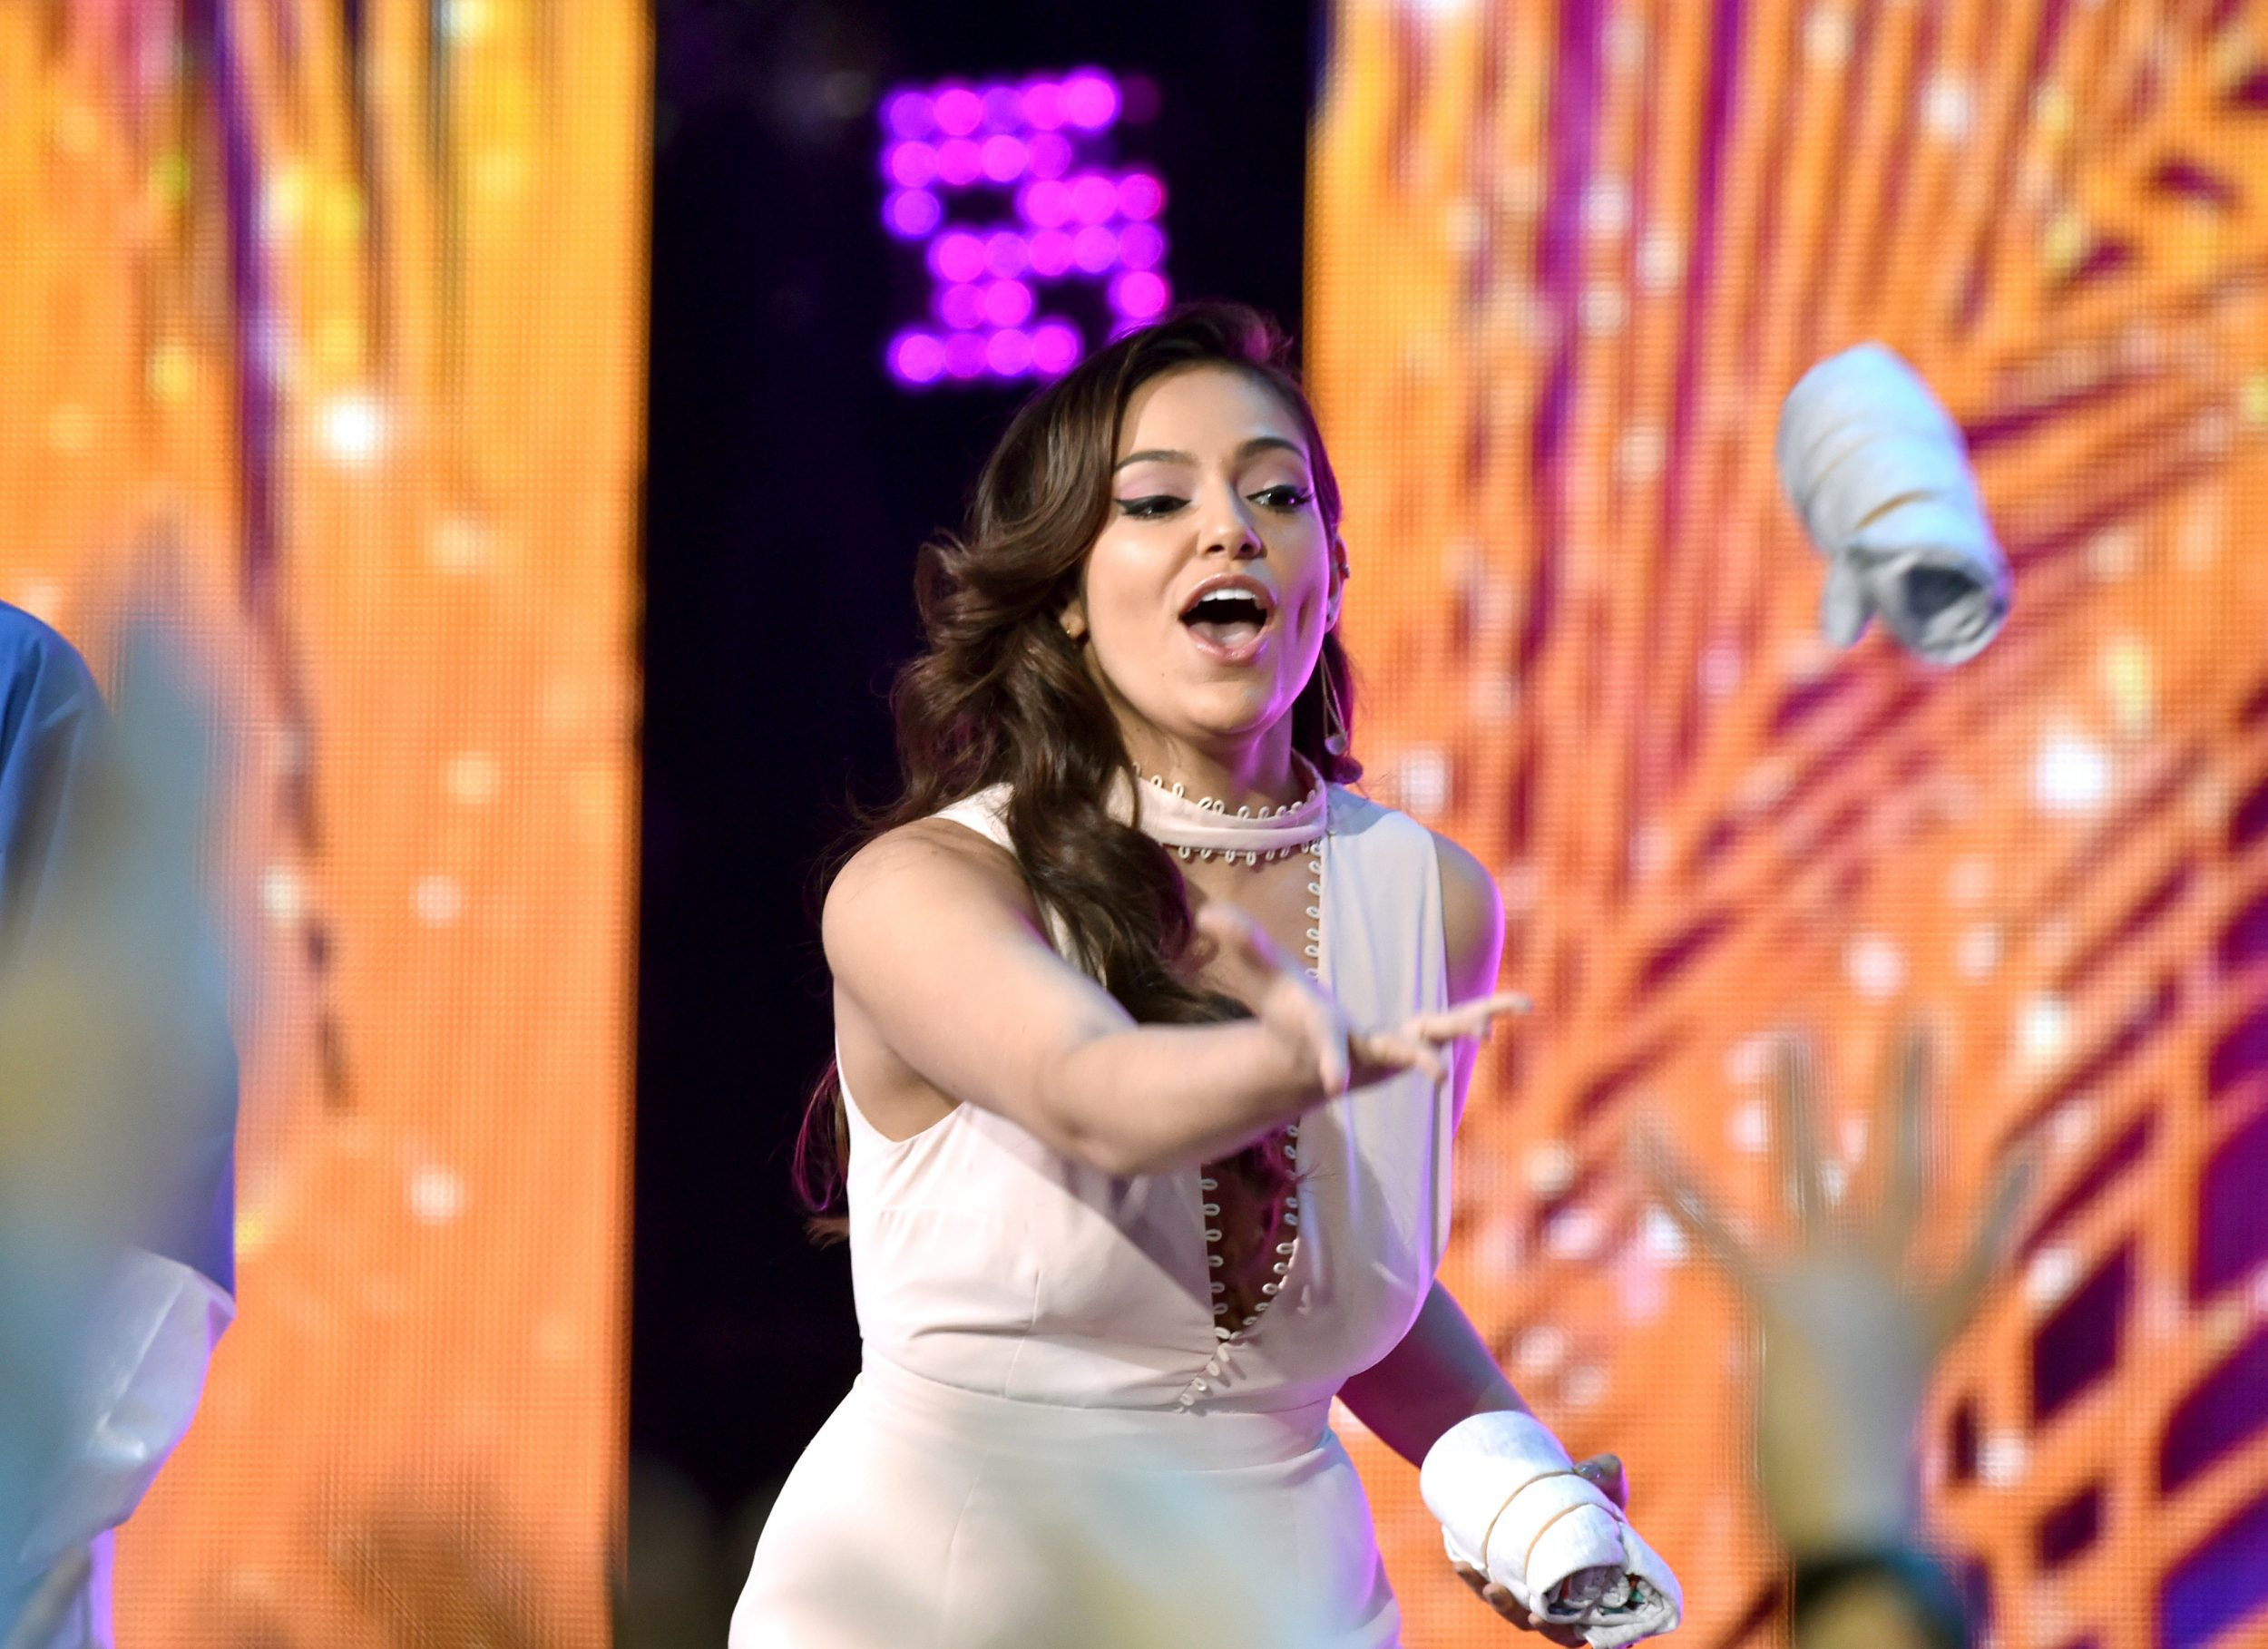 LOS ANGELES, CA - MARCH 11:  Internet personality Bethany Mota tosses a T-shirt onstage at Nickelodeon's 2017 Kids' Choice Awards at USC Galen Center on March 11, 2017 in Los Angeles, California.  (Photo by Frazer Harrison/KCA2017/Getty Images for Nickelodeon - Issued to Media by Nickelodeon)